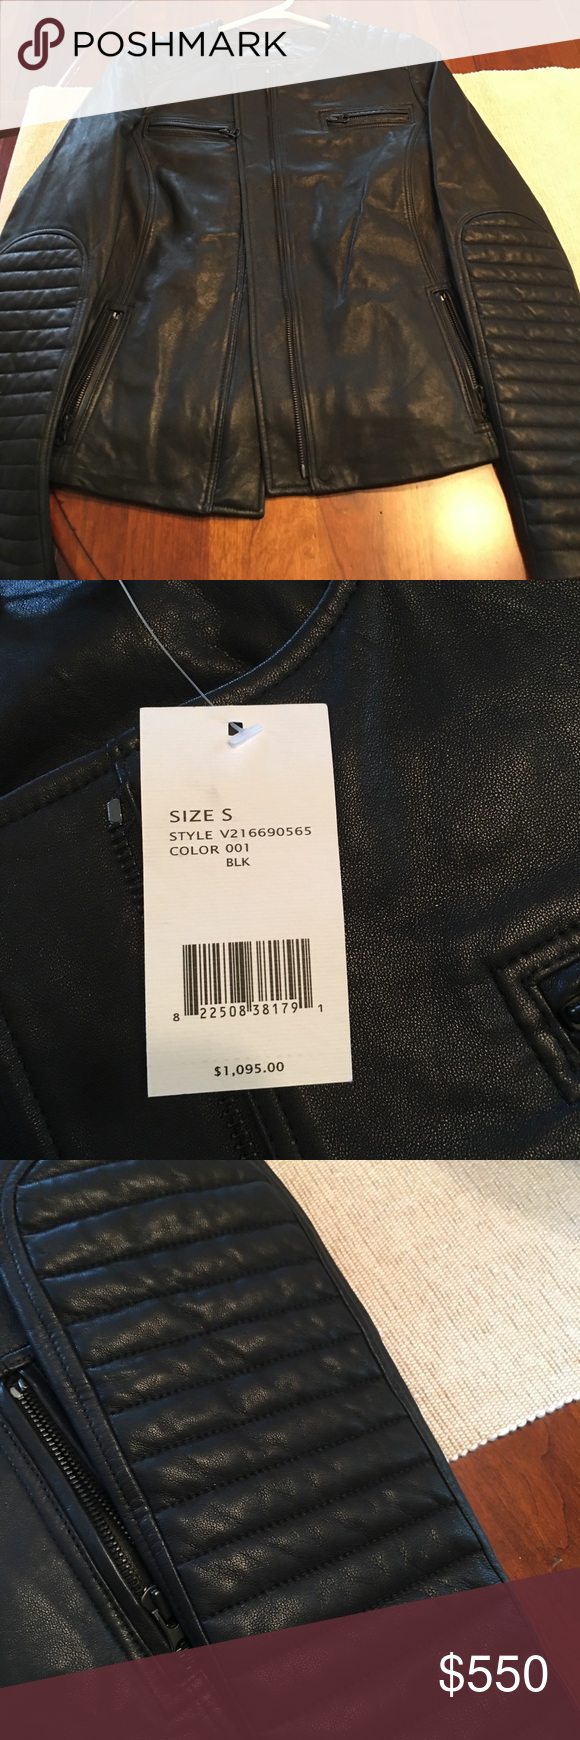 e8bf78639e2 Vince leather jacket Gorgeous black leather Vince brand Moto jacket, never  worn with tags still attached! Vince Jackets & Coats